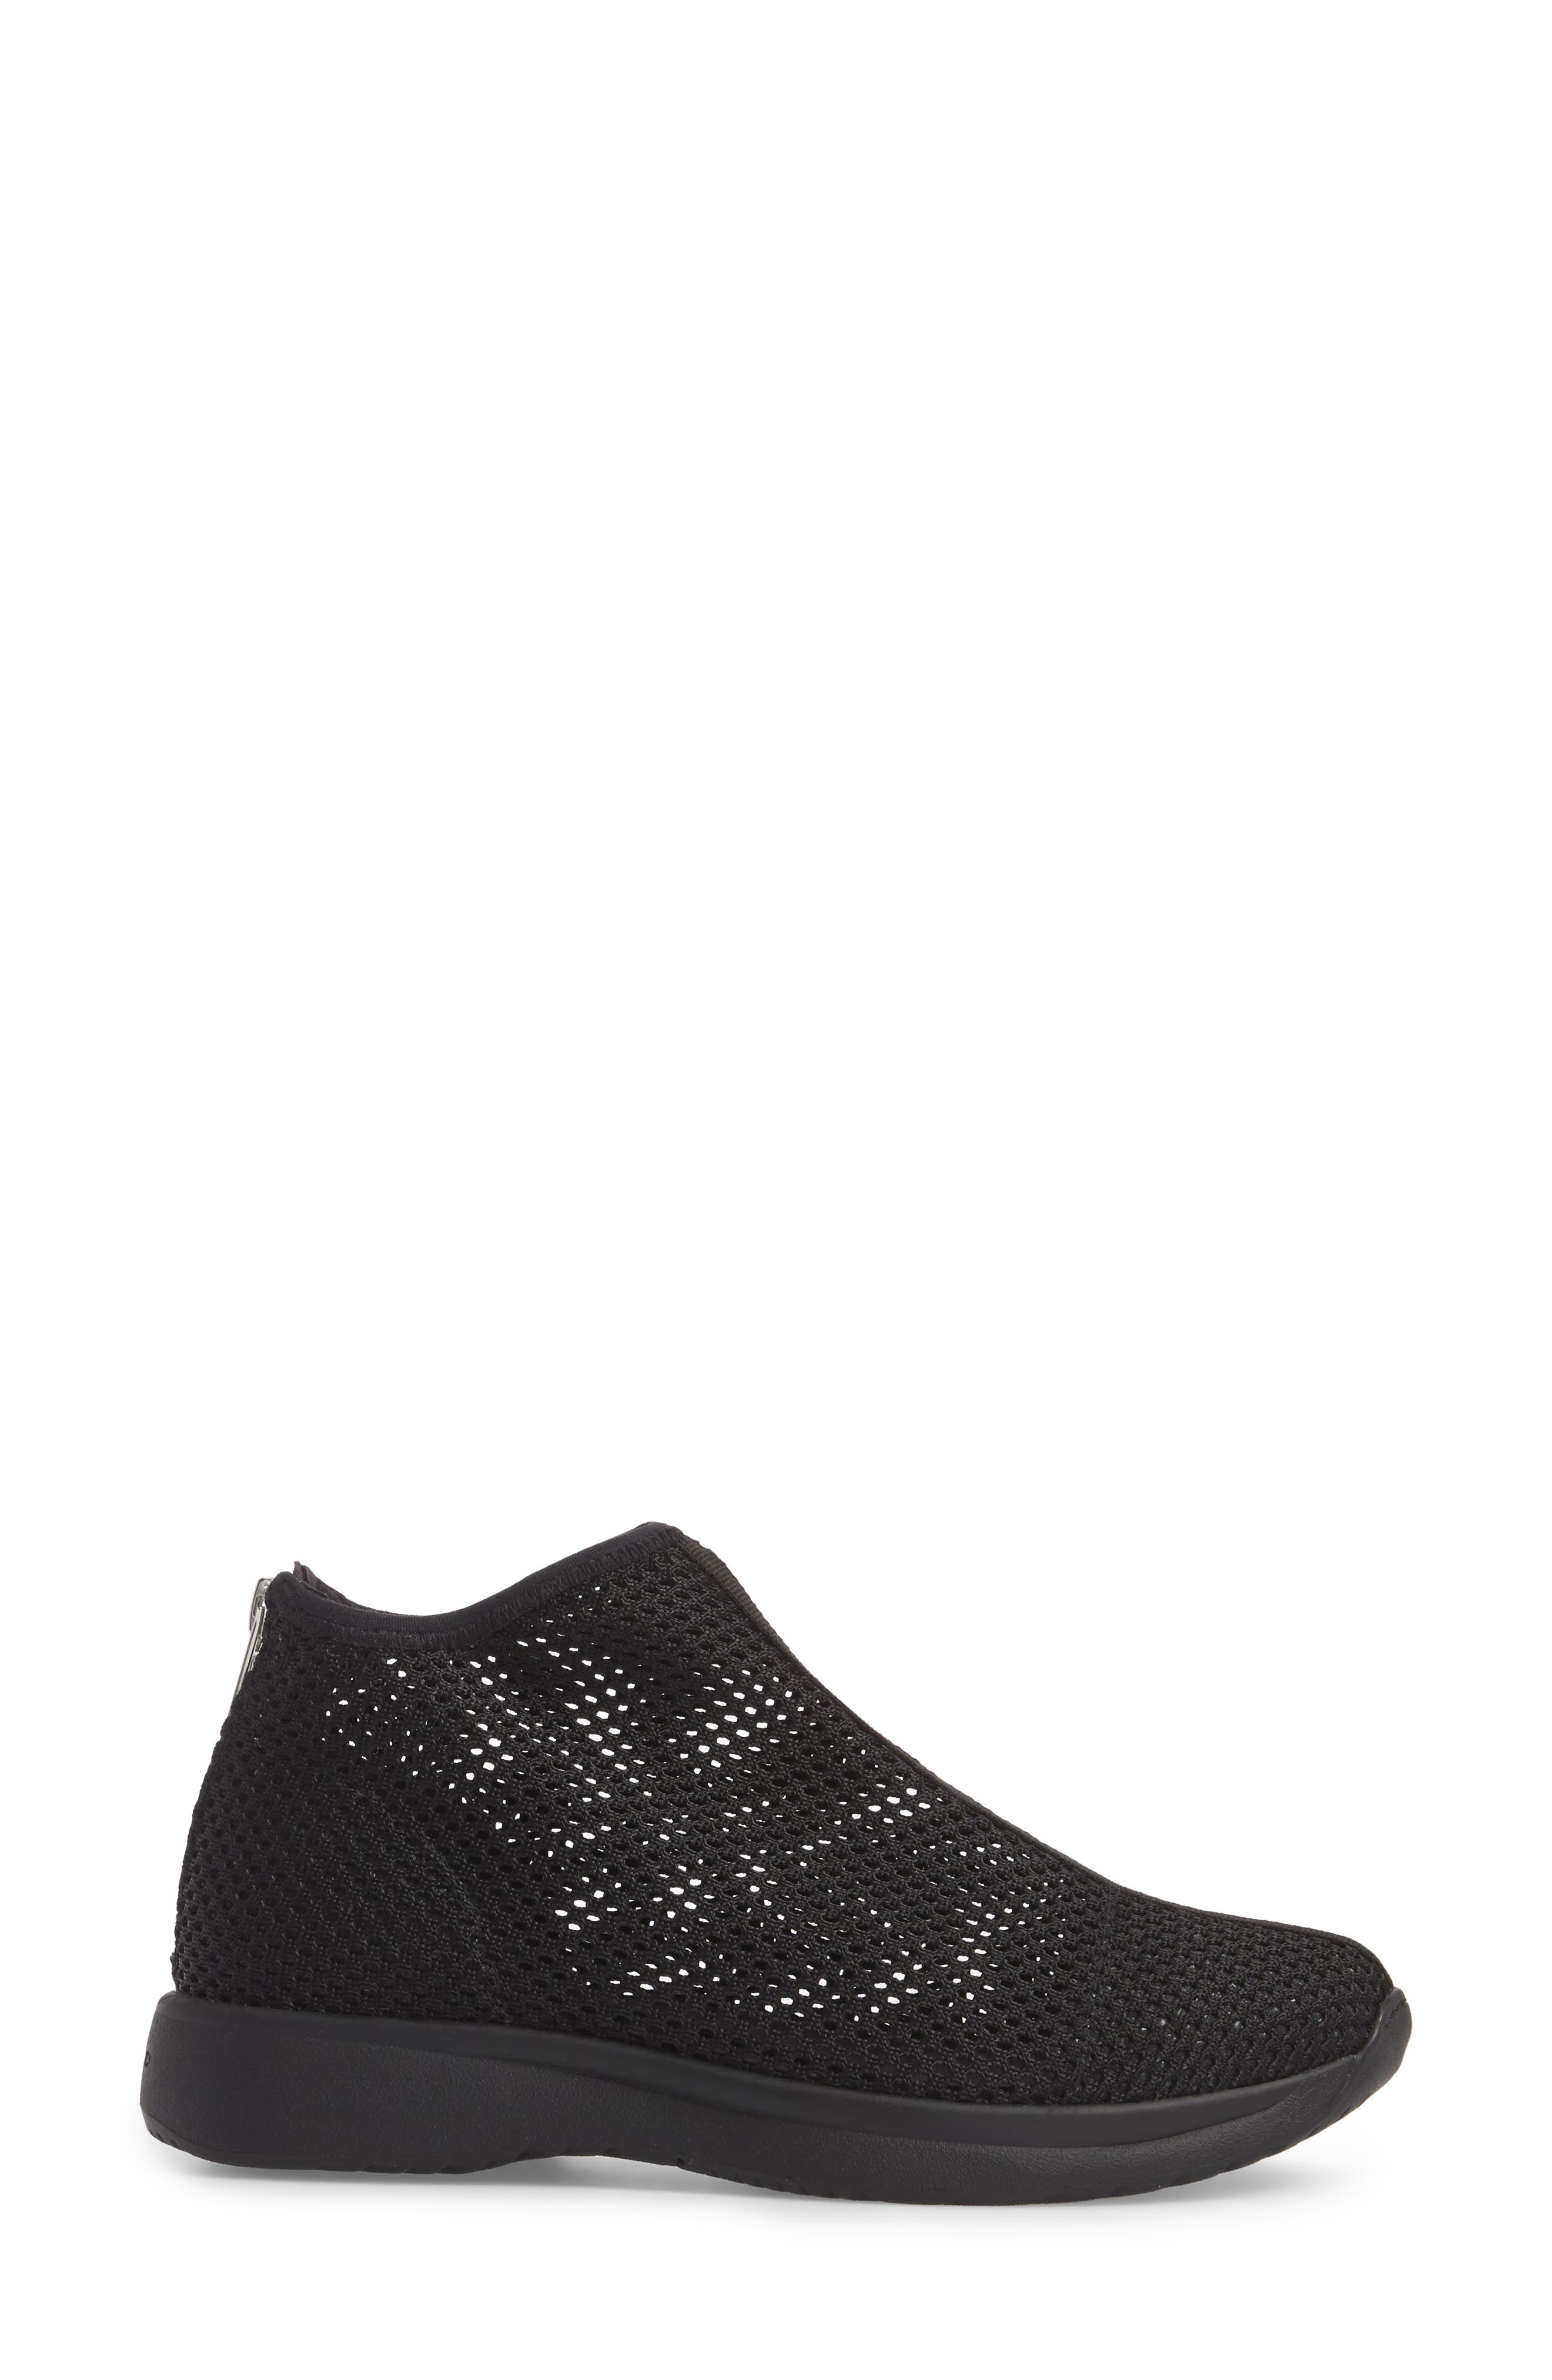 Cintia Sneaker,                             Alternate thumbnail 3, color,                             Black Fabric